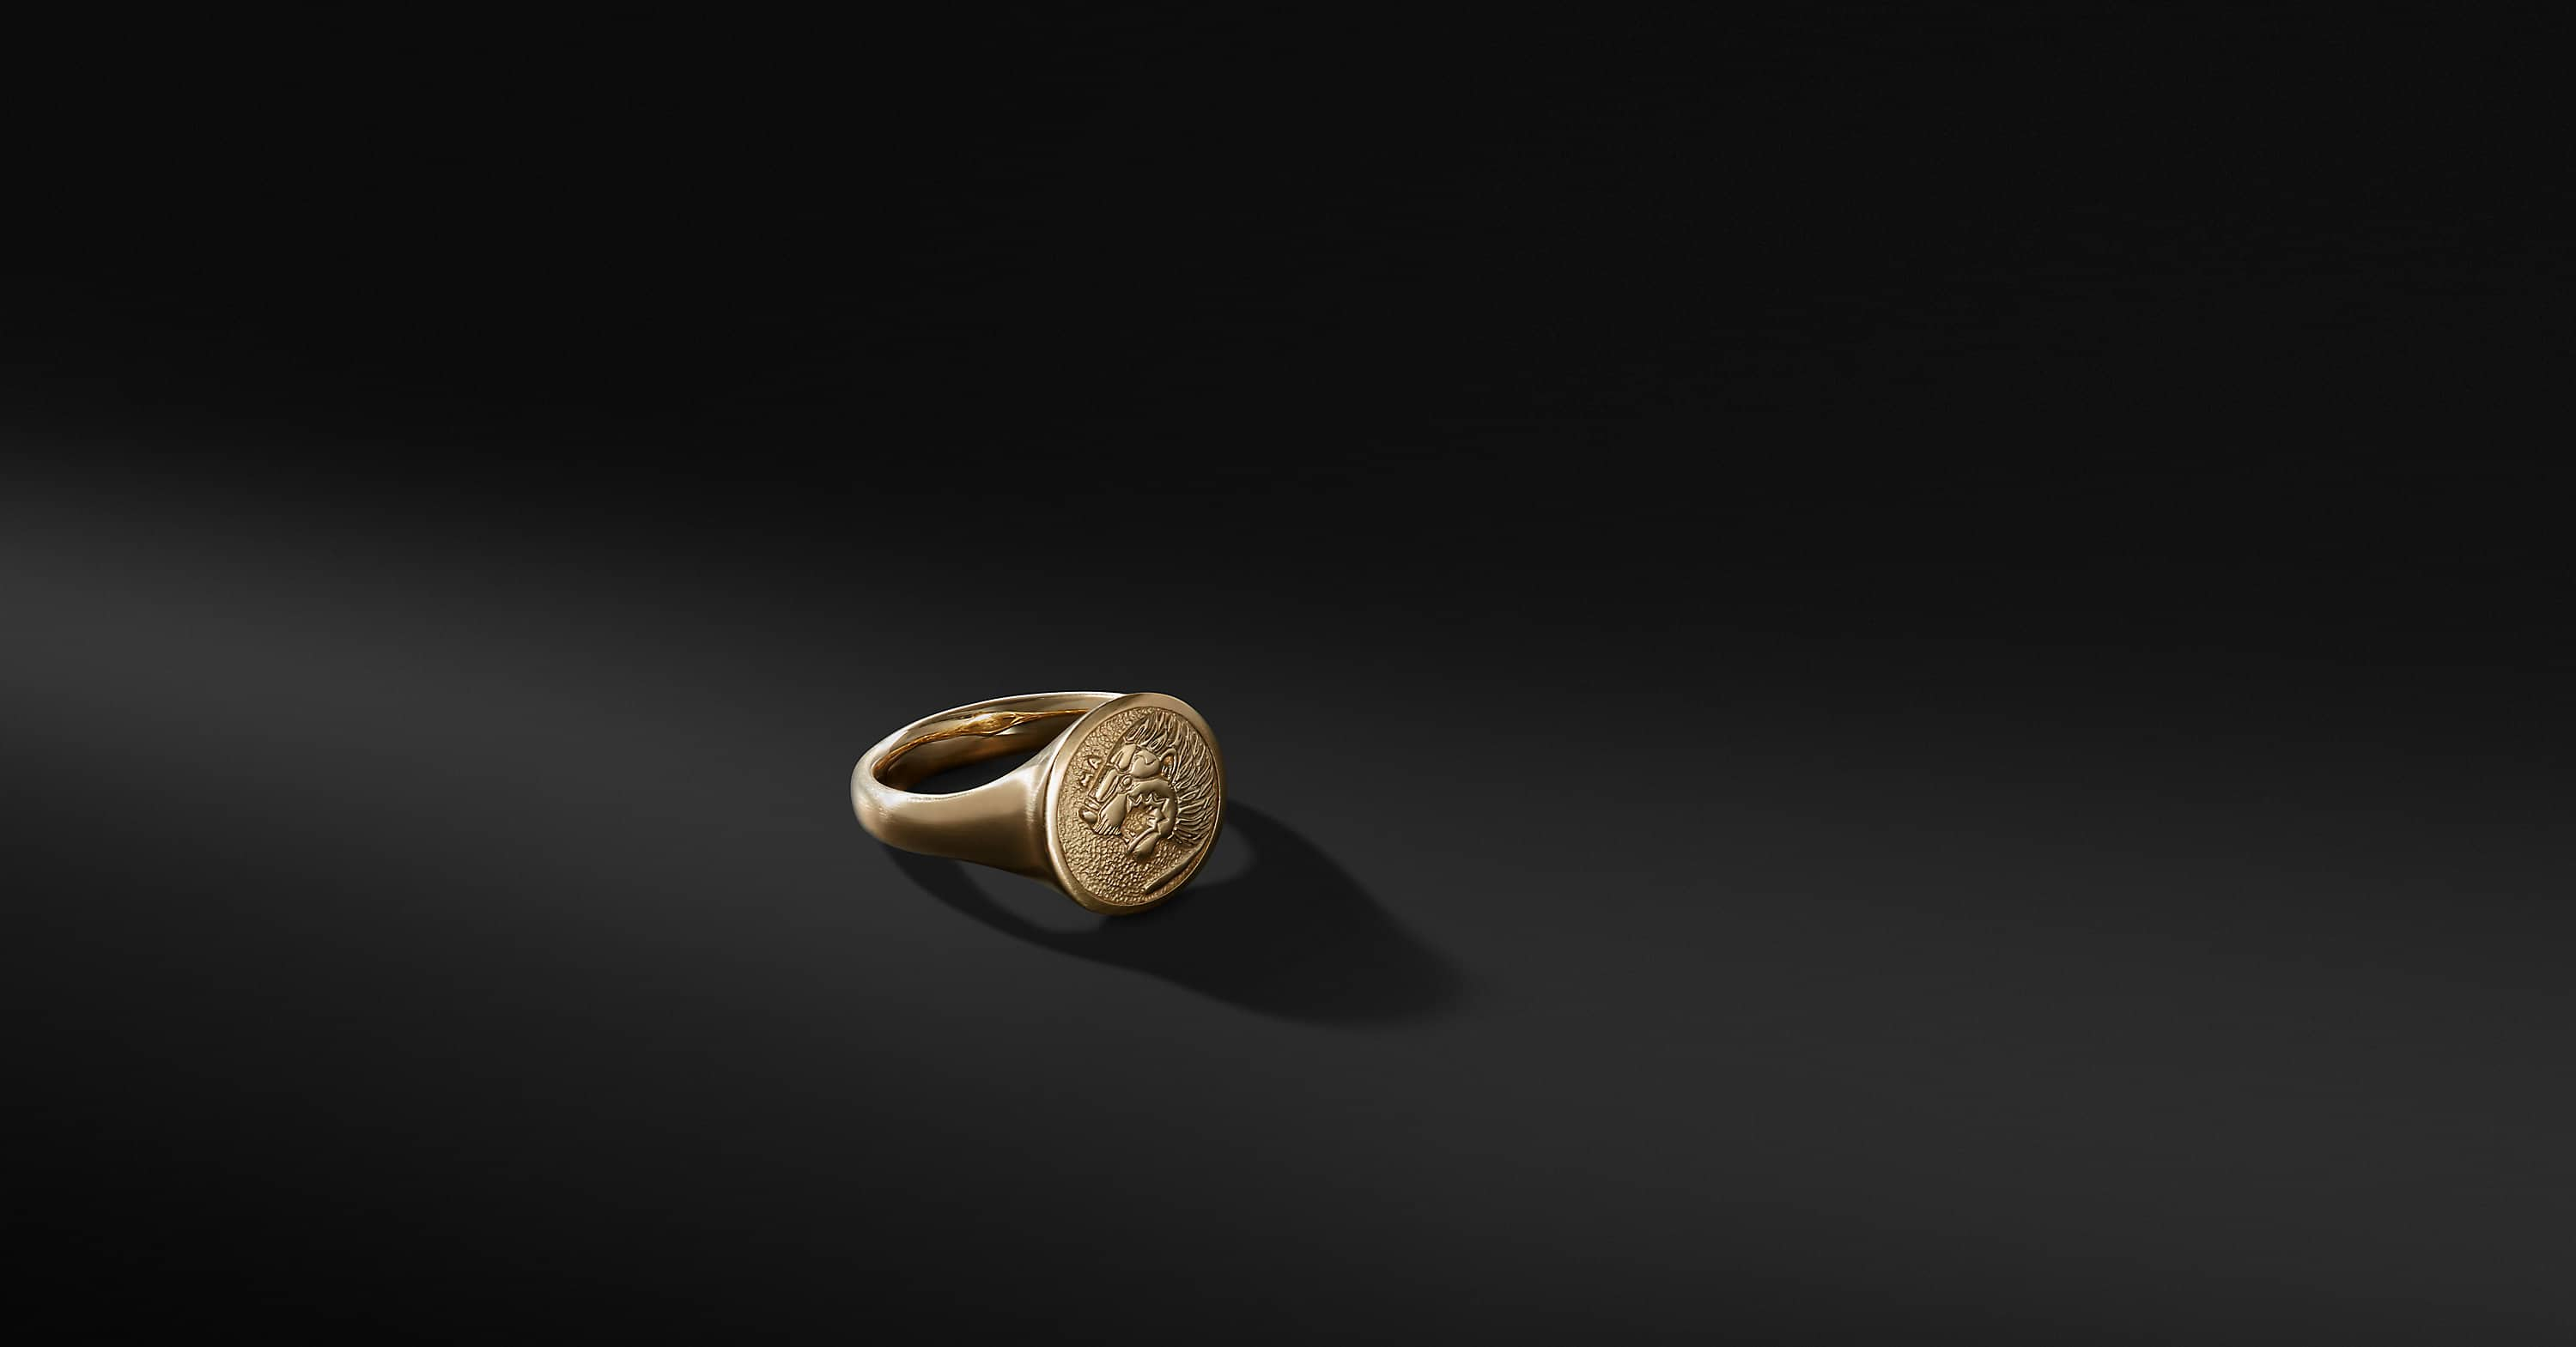 Petrvs Lion Signet Pinky Ring in 18K Gold